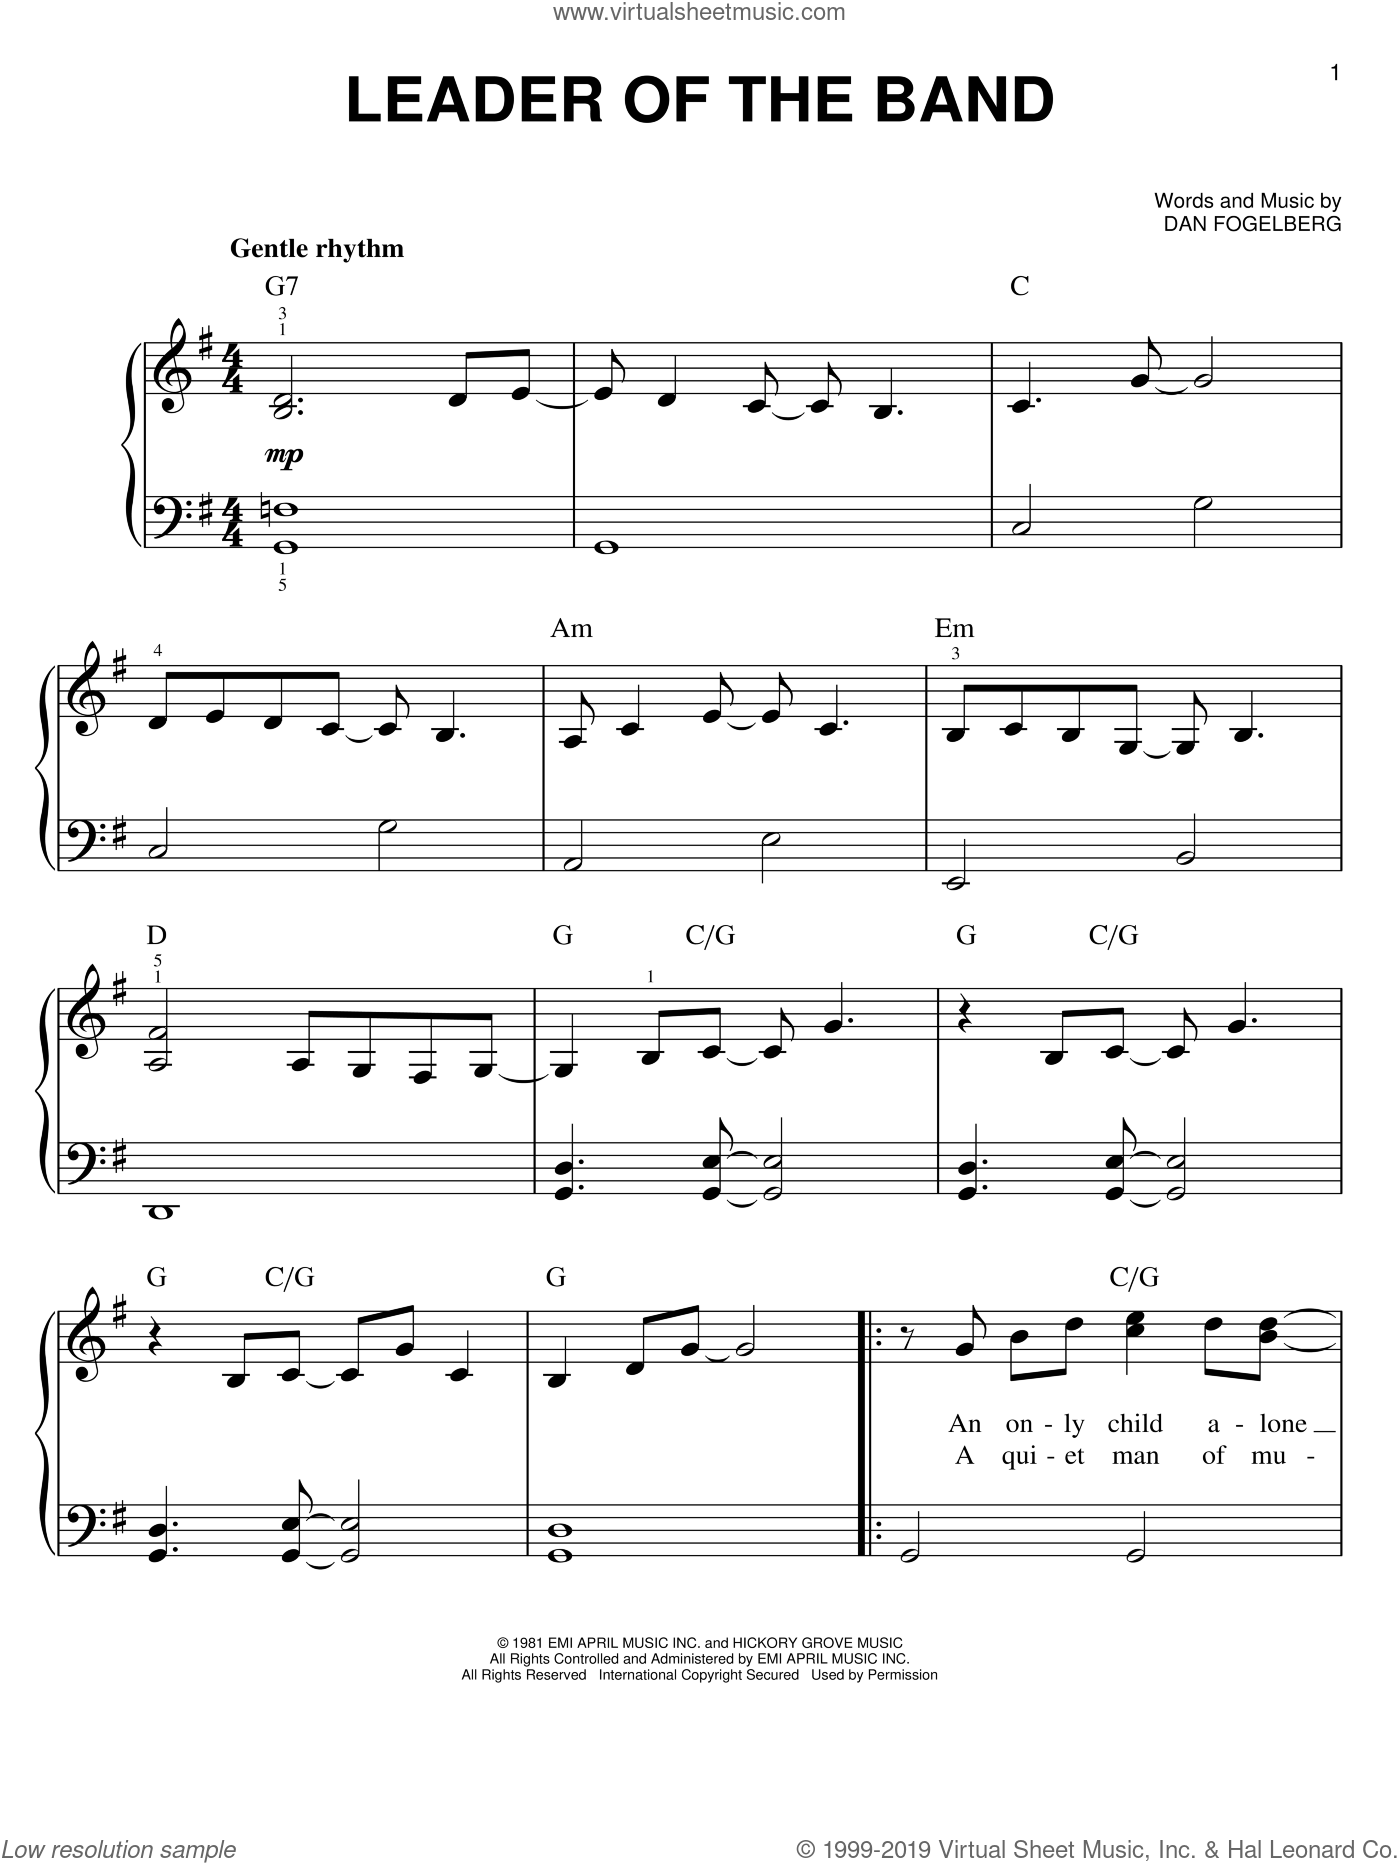 Leader Of The Band sheet music for piano solo (chords) by Dan Fogelberg